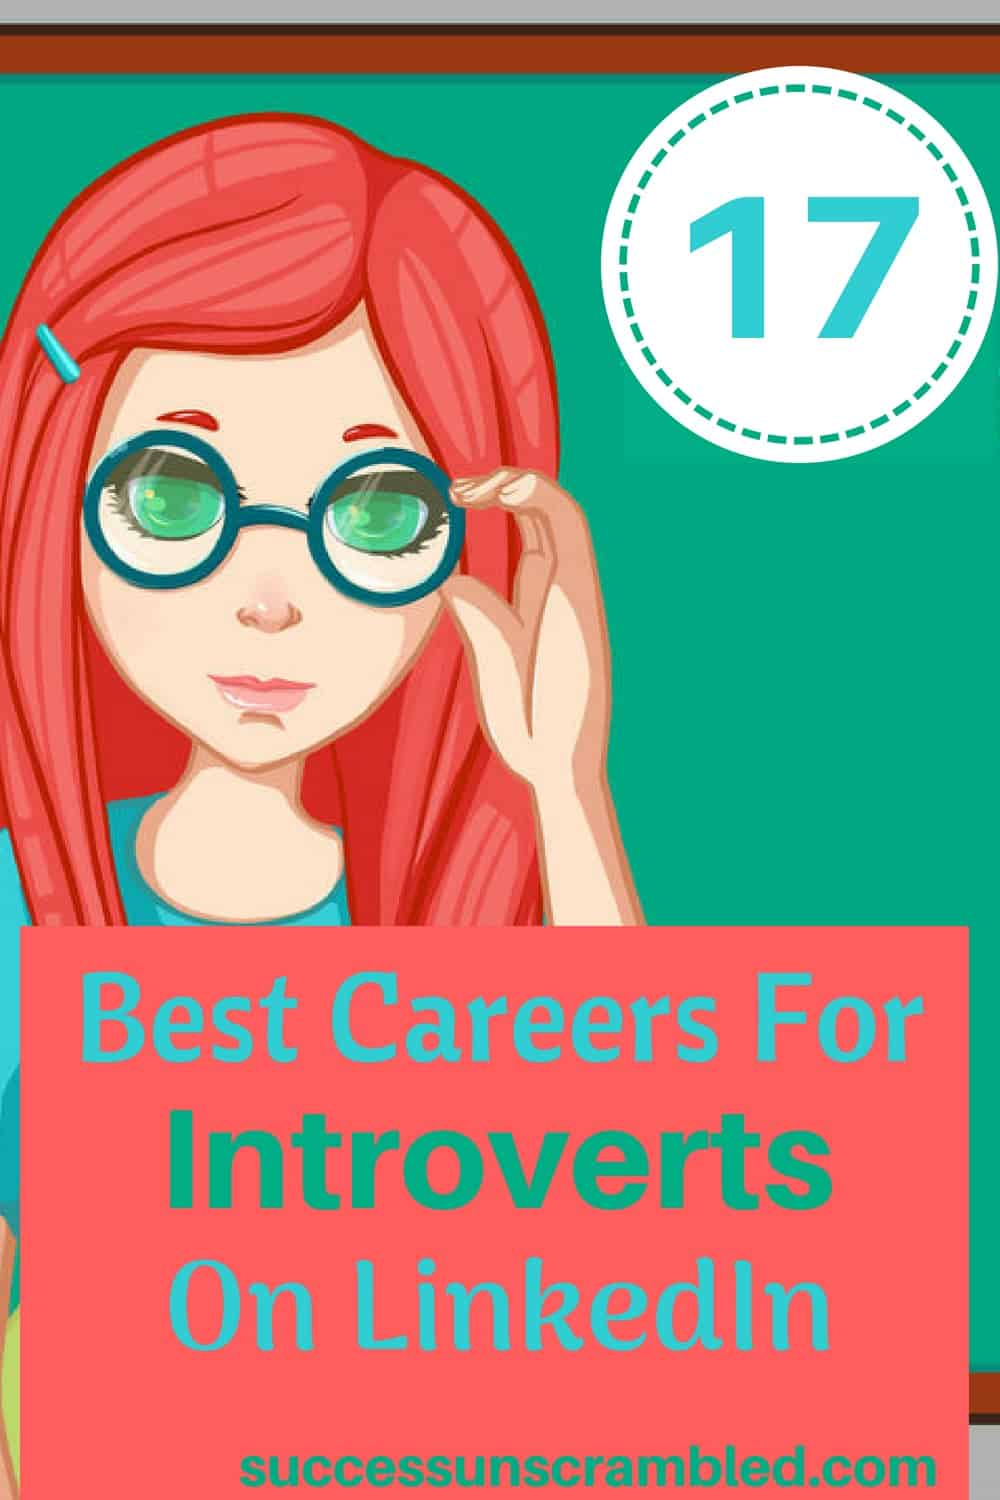 17 Best Careers for Introverts on LinkedIn - 2-0